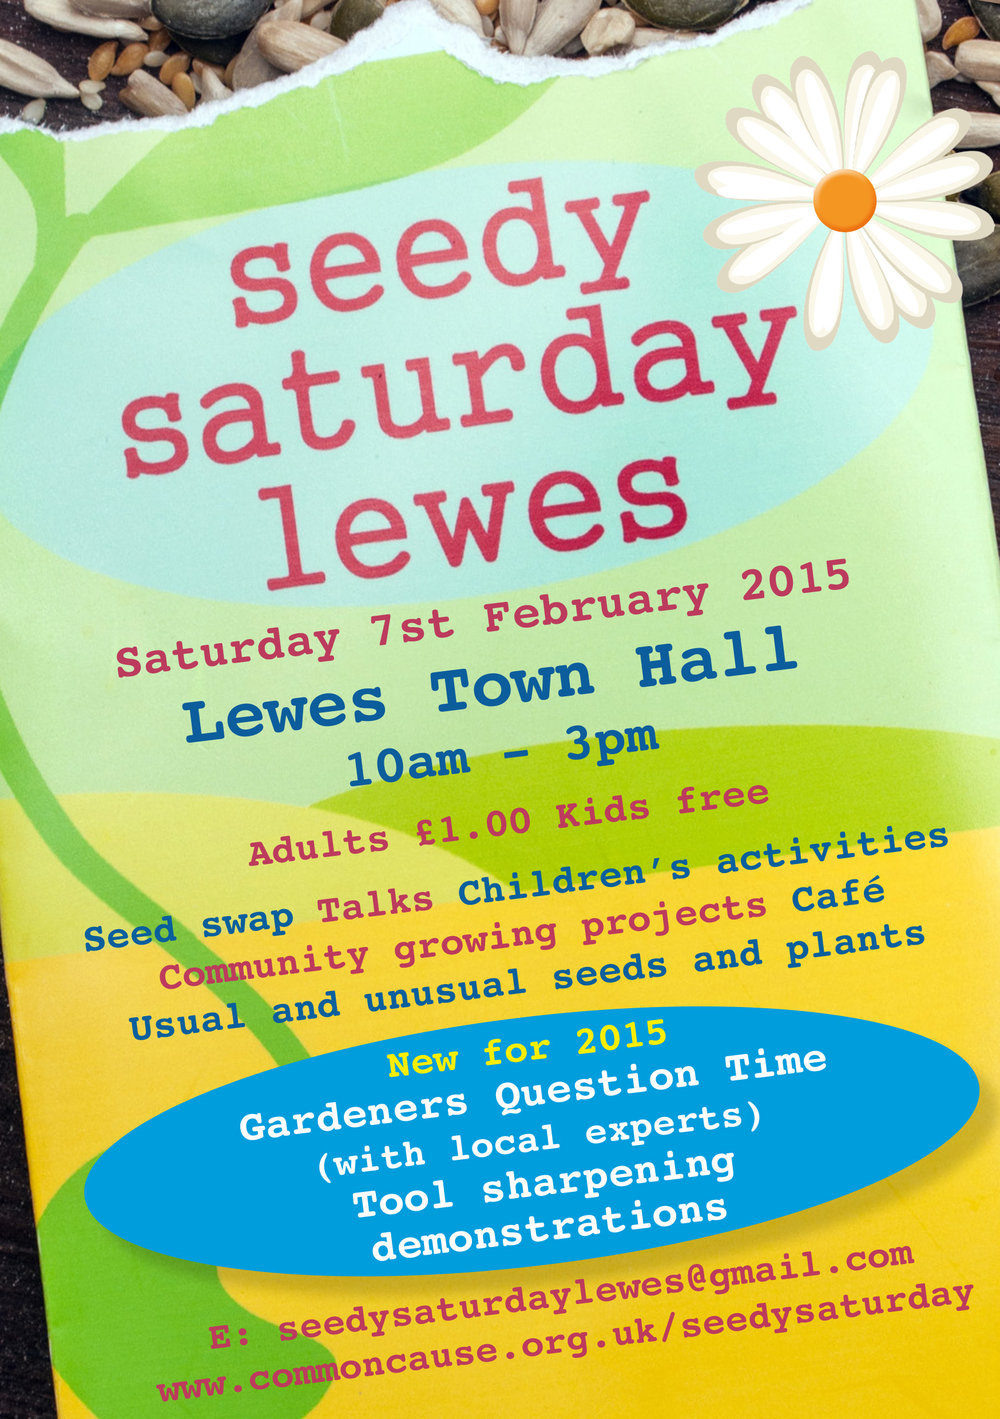 Seedy saturday A5 2015 Nov 17th.jpg